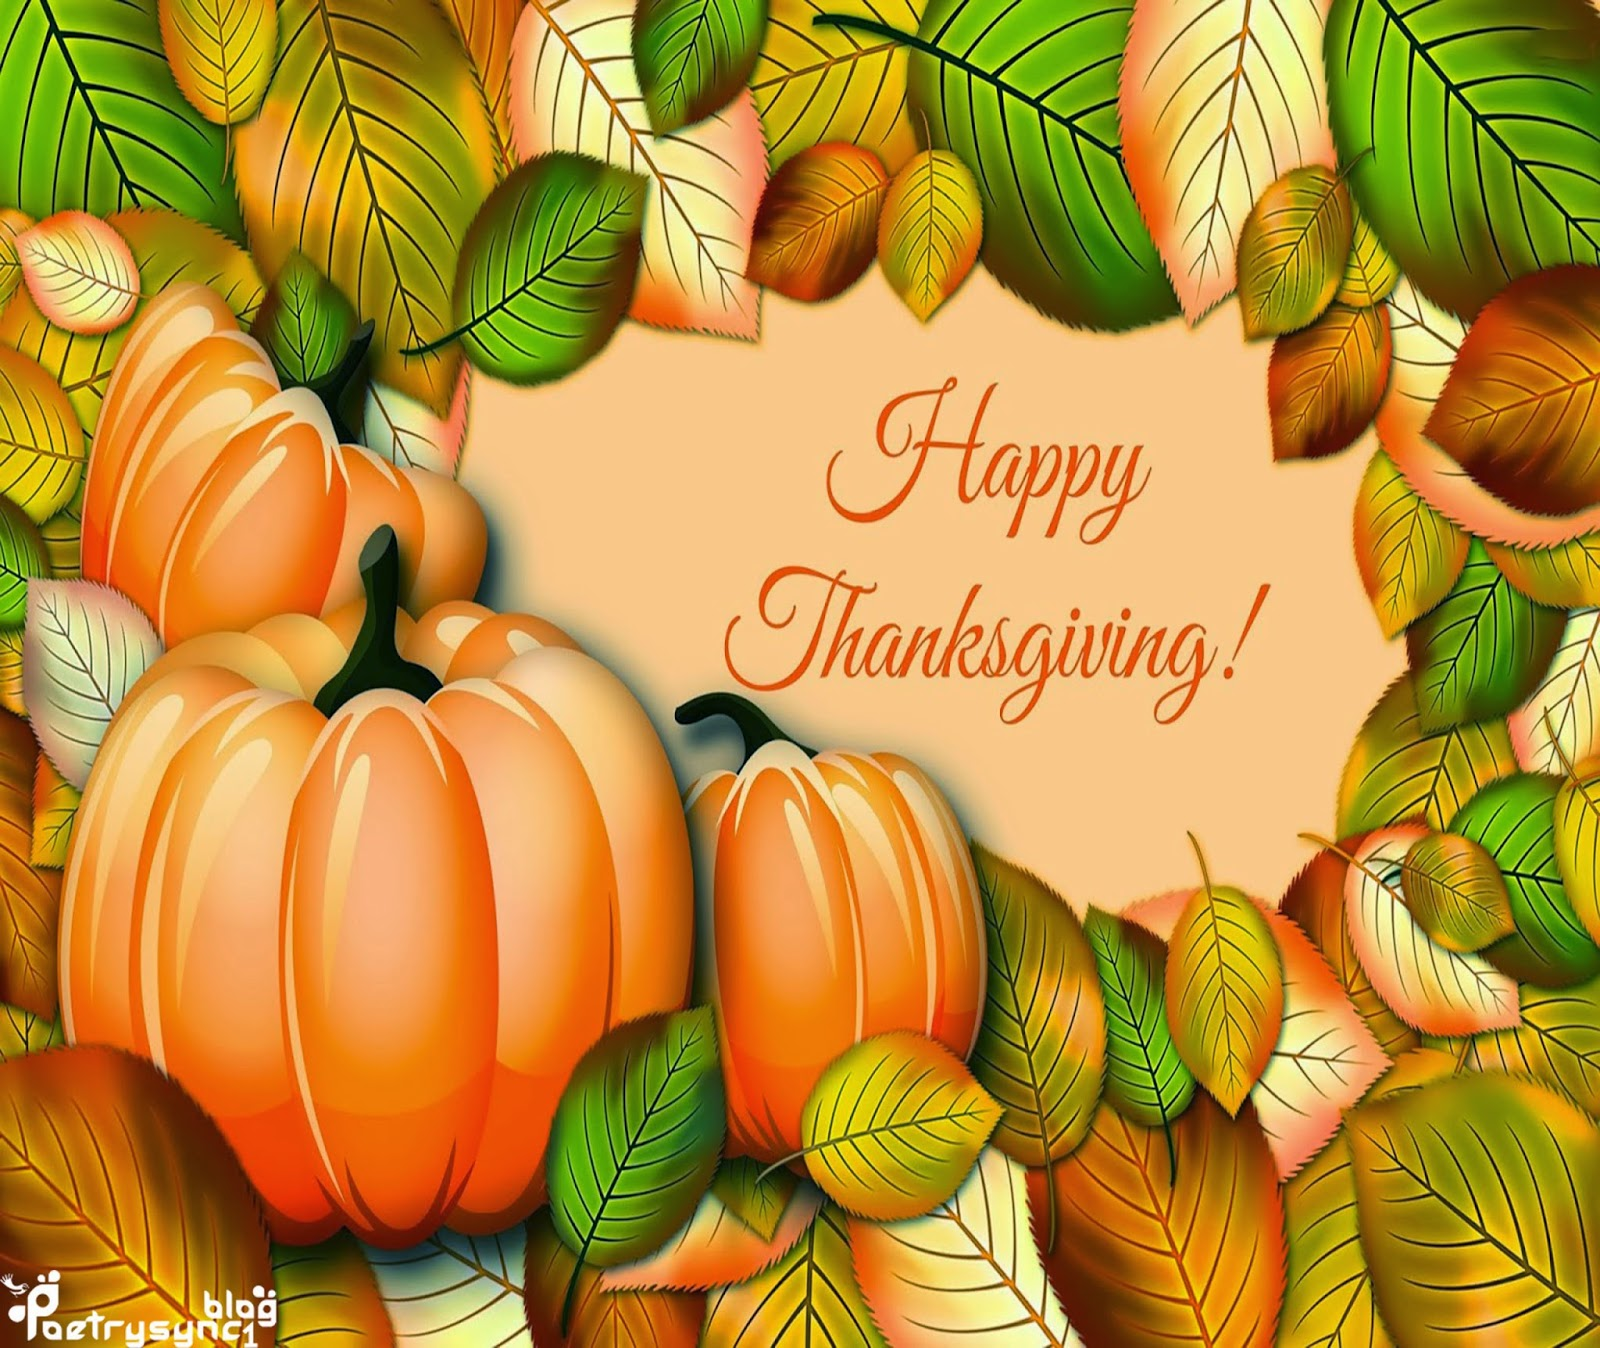 Poetryquotes thanksgiving cards thanksgiving day top wallpapers wishes with top best 25 quotes vol 5 kristyandbryce Gallery